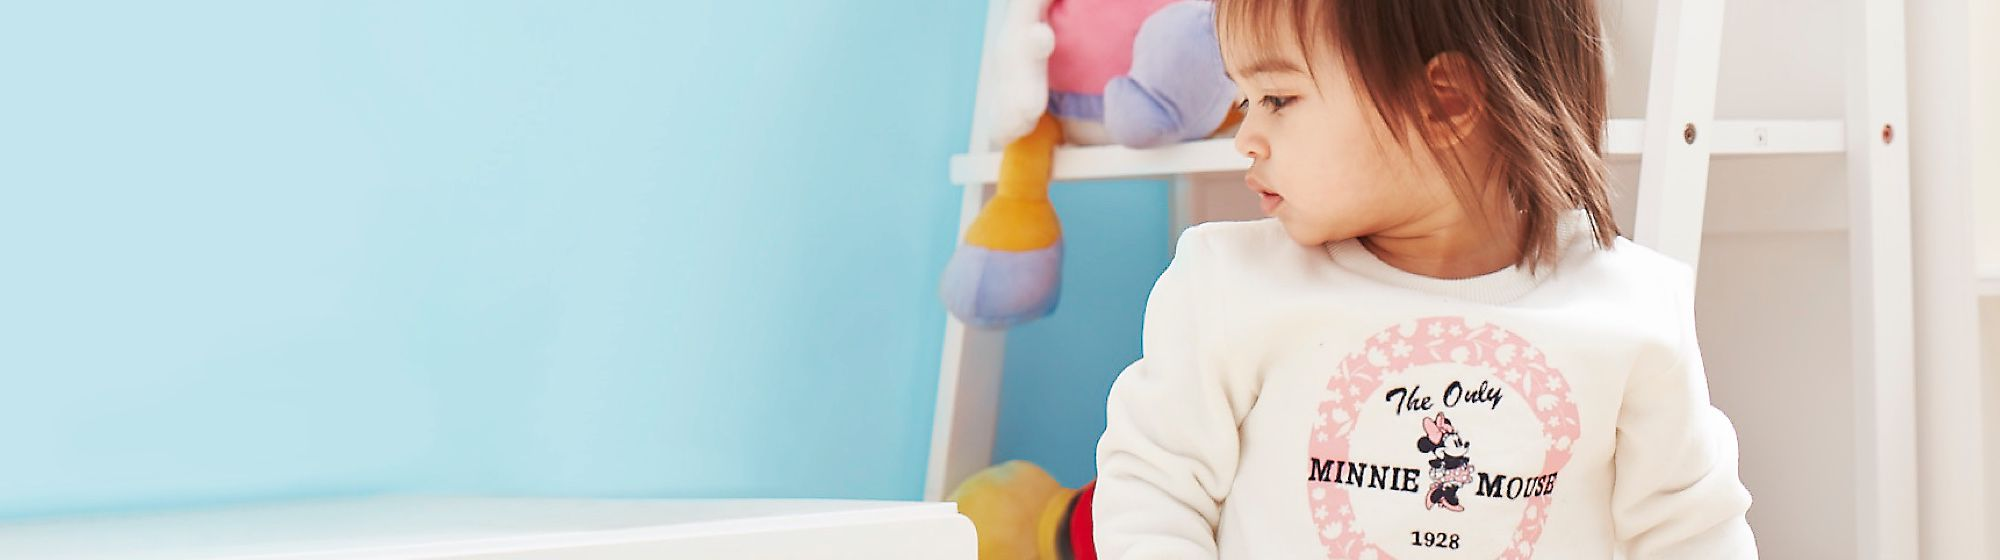 Baby & Nursery Find the perfect gift for new arrivals DISCOVER MORE